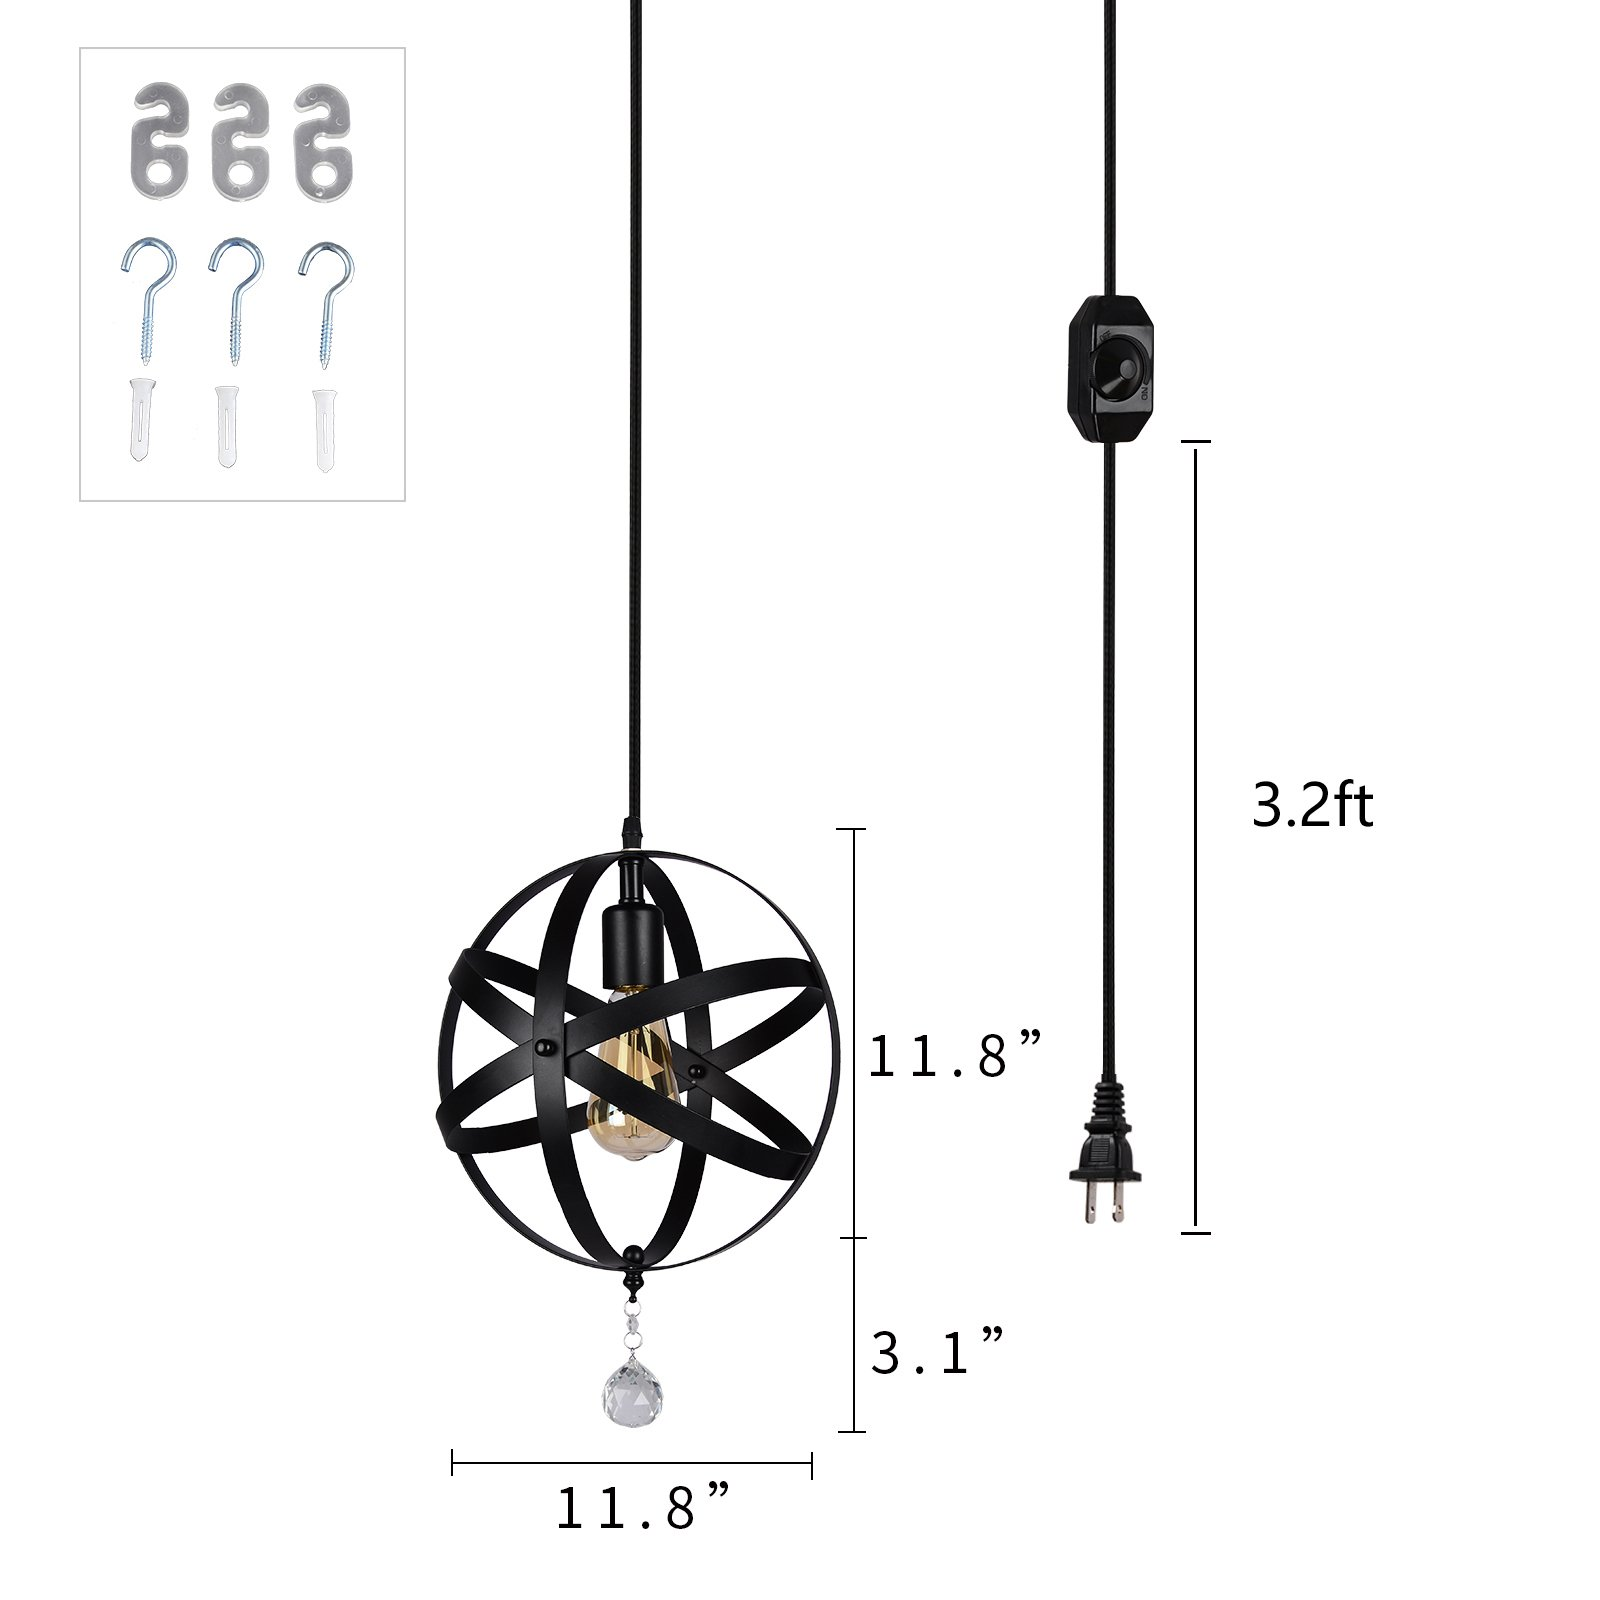 HMVPL Plug-in Industrial Globe Pendant Lights with 16.4 Ft Hanging Cord and Dimmable On/Off Switch, Vintage Metal Spherical Lantern Chandelier Ceiling Light Fixture by HMVPL (Image #7)